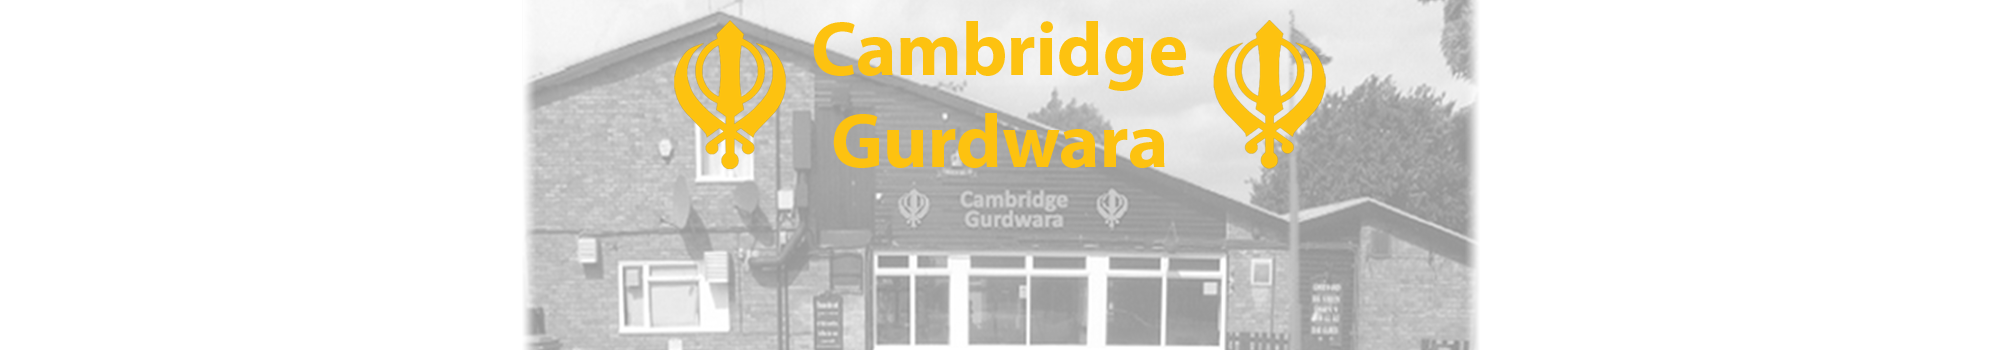 Cambridge Gurdwara Images